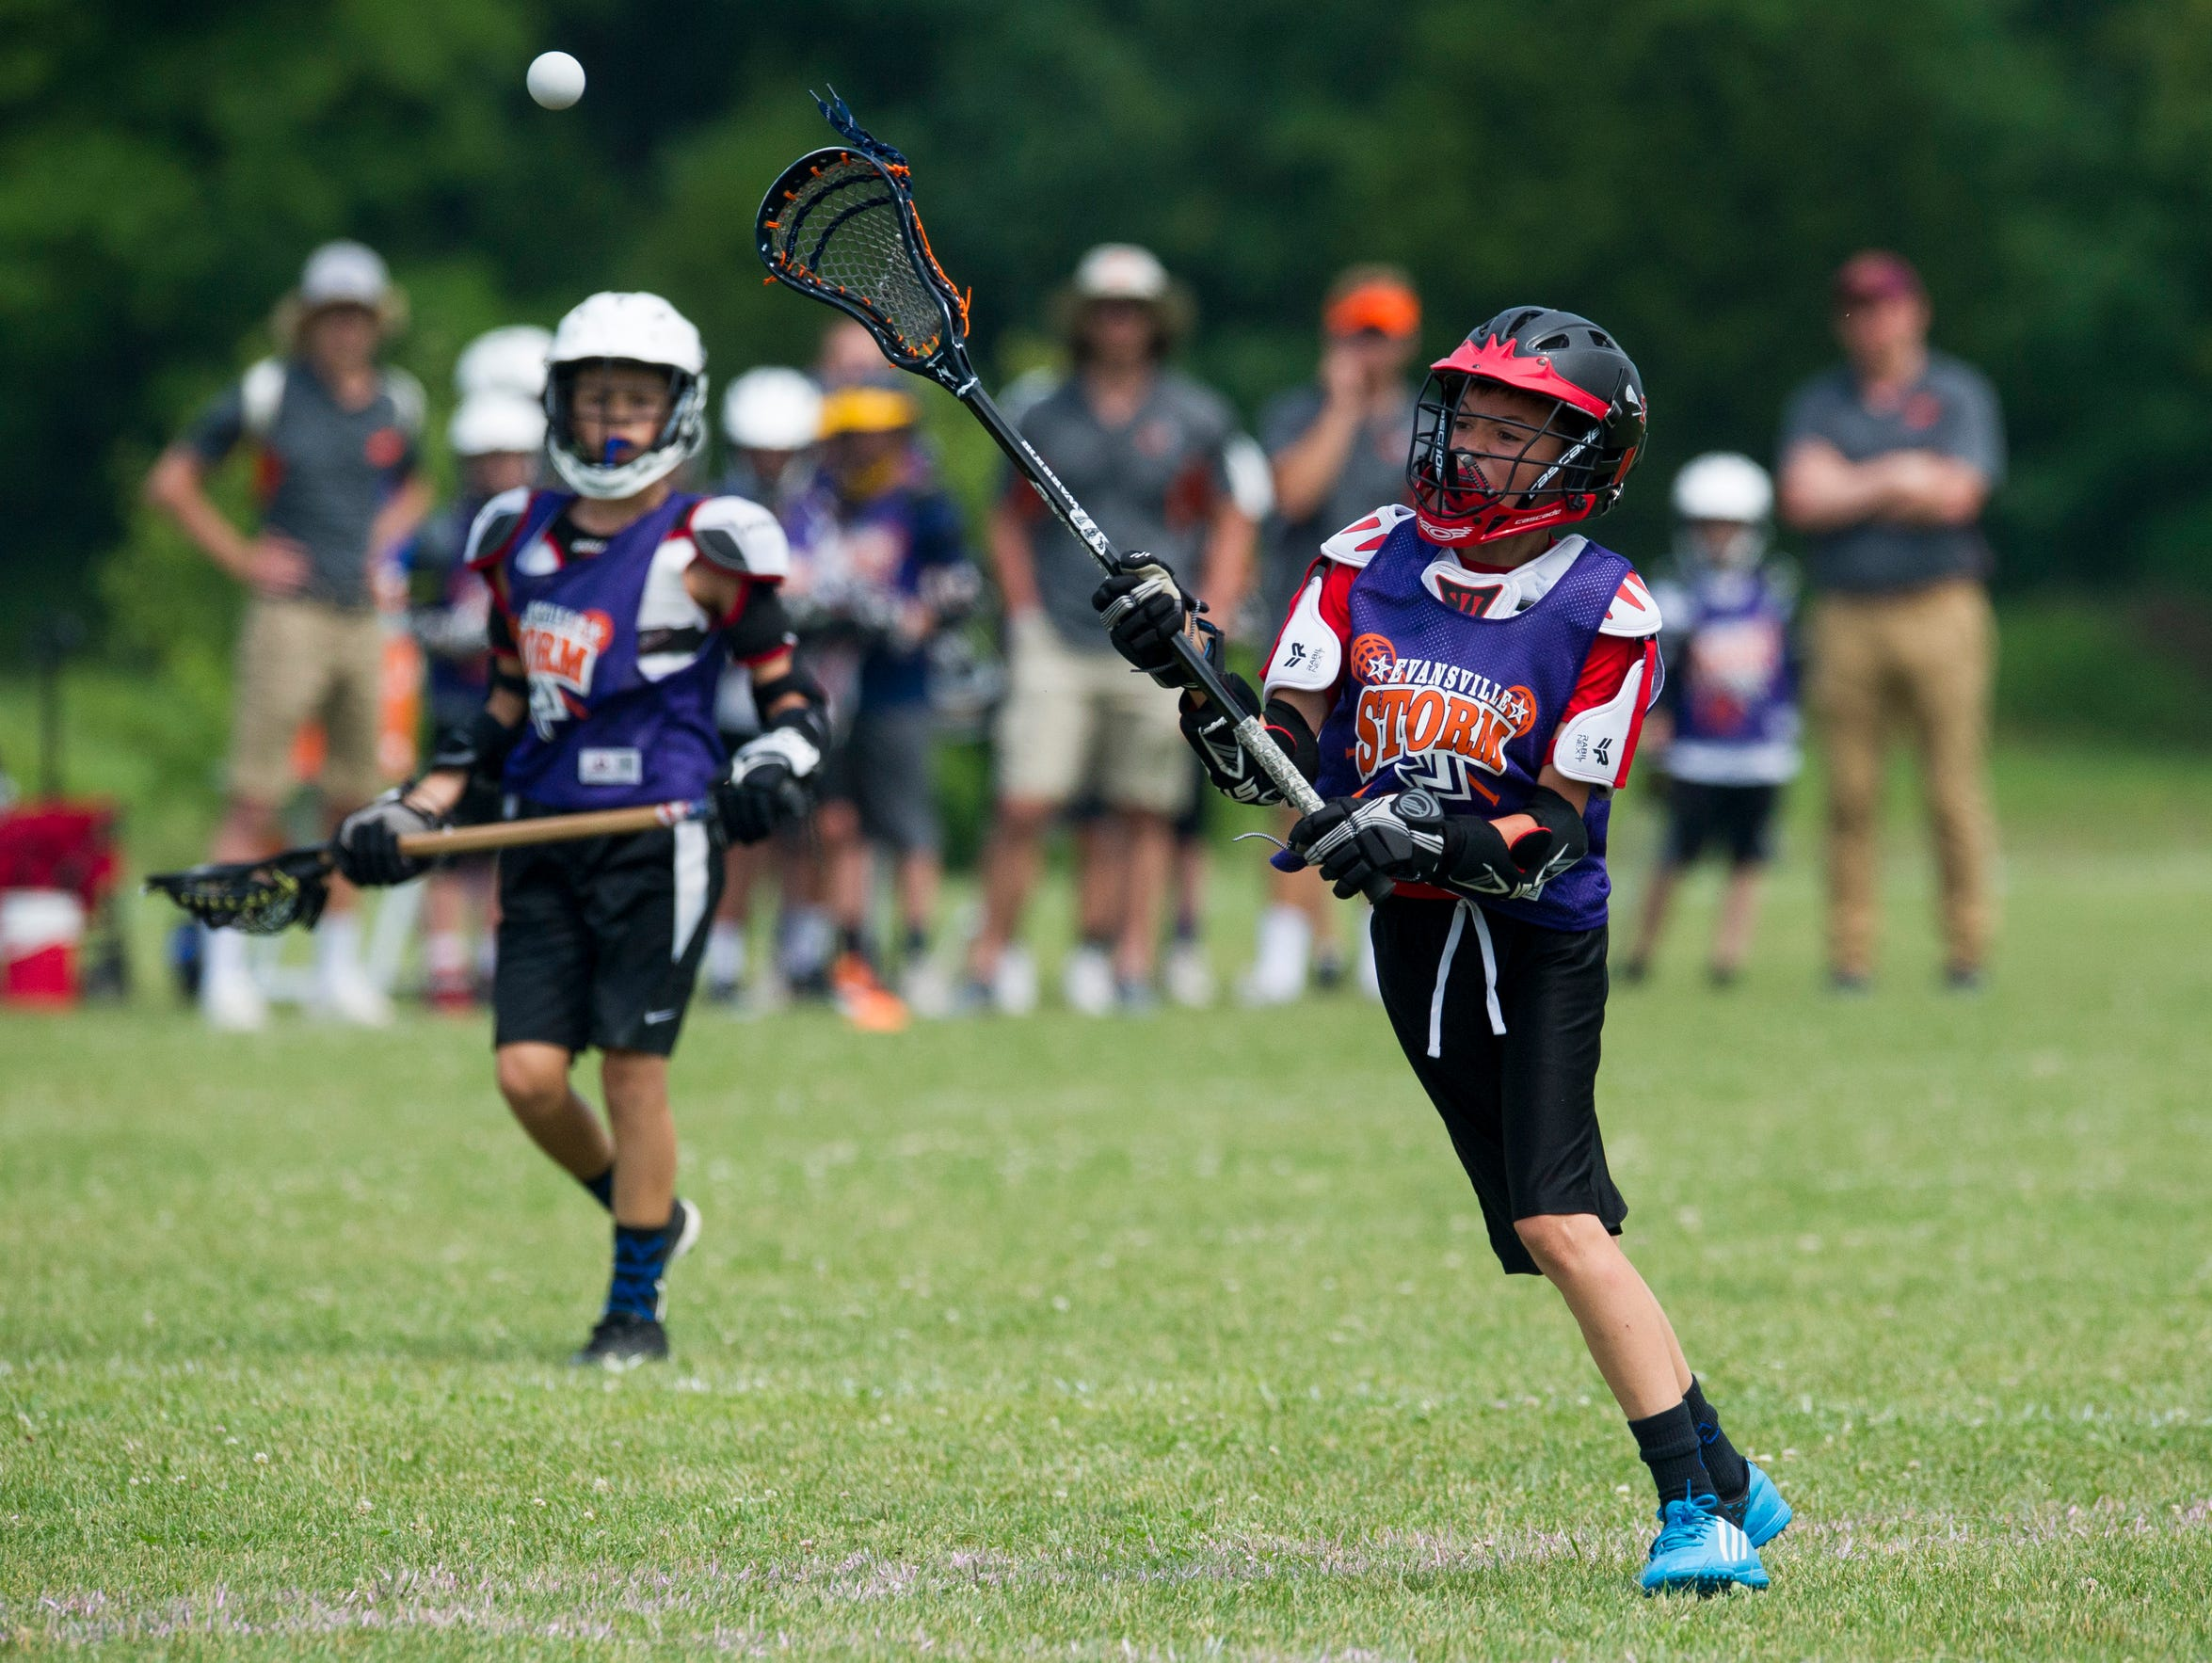 Eville Storm 12U's Wendy M. passes the ball during